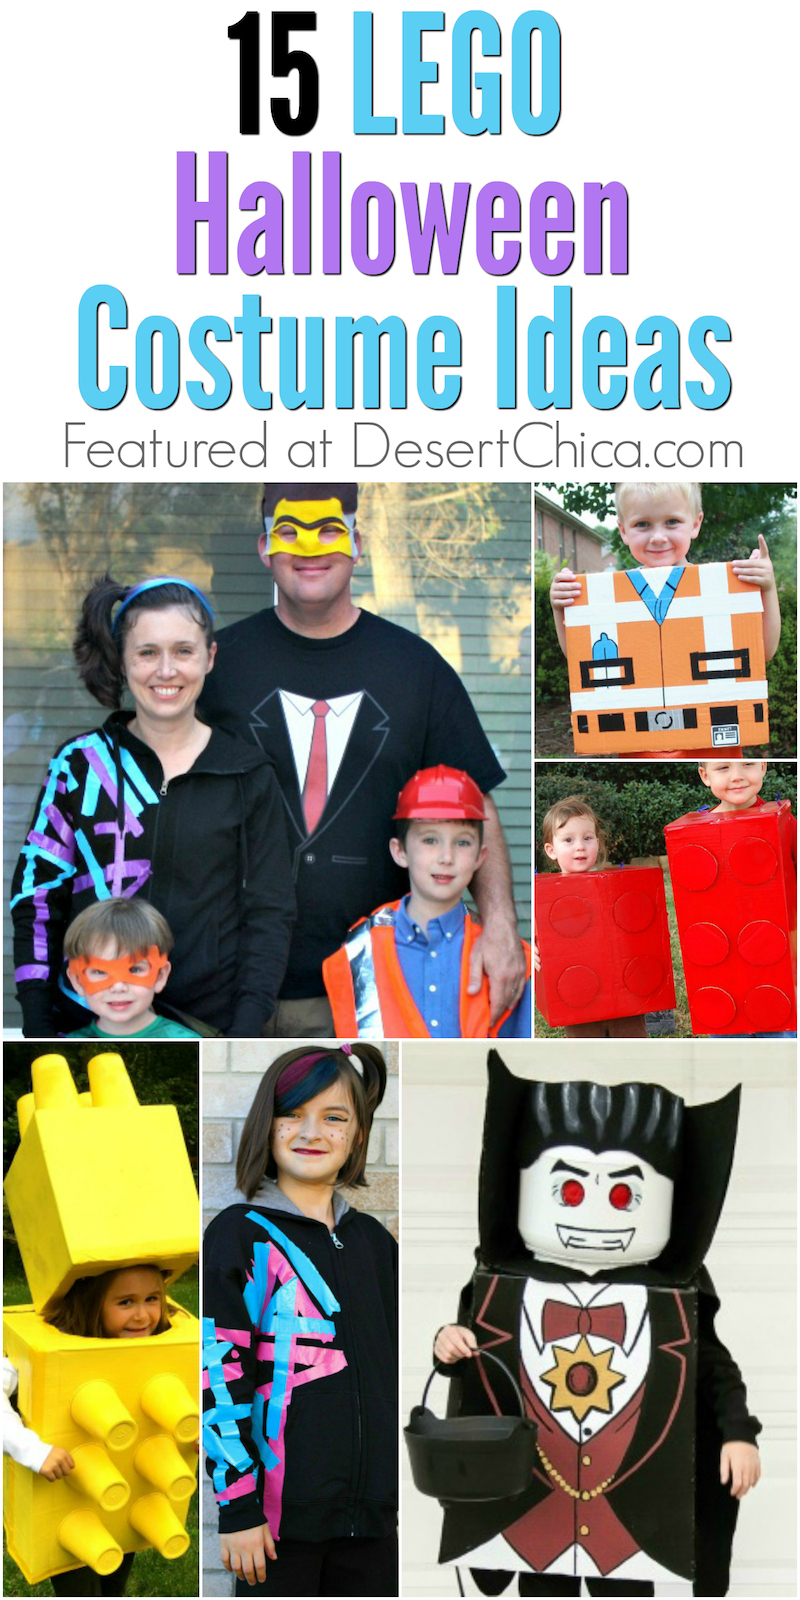 Are your kids LEGO crazy like mine? If so, check out these awesome LEGO costume ideas for Halloween. There are lots of LEGO characters to choose from!